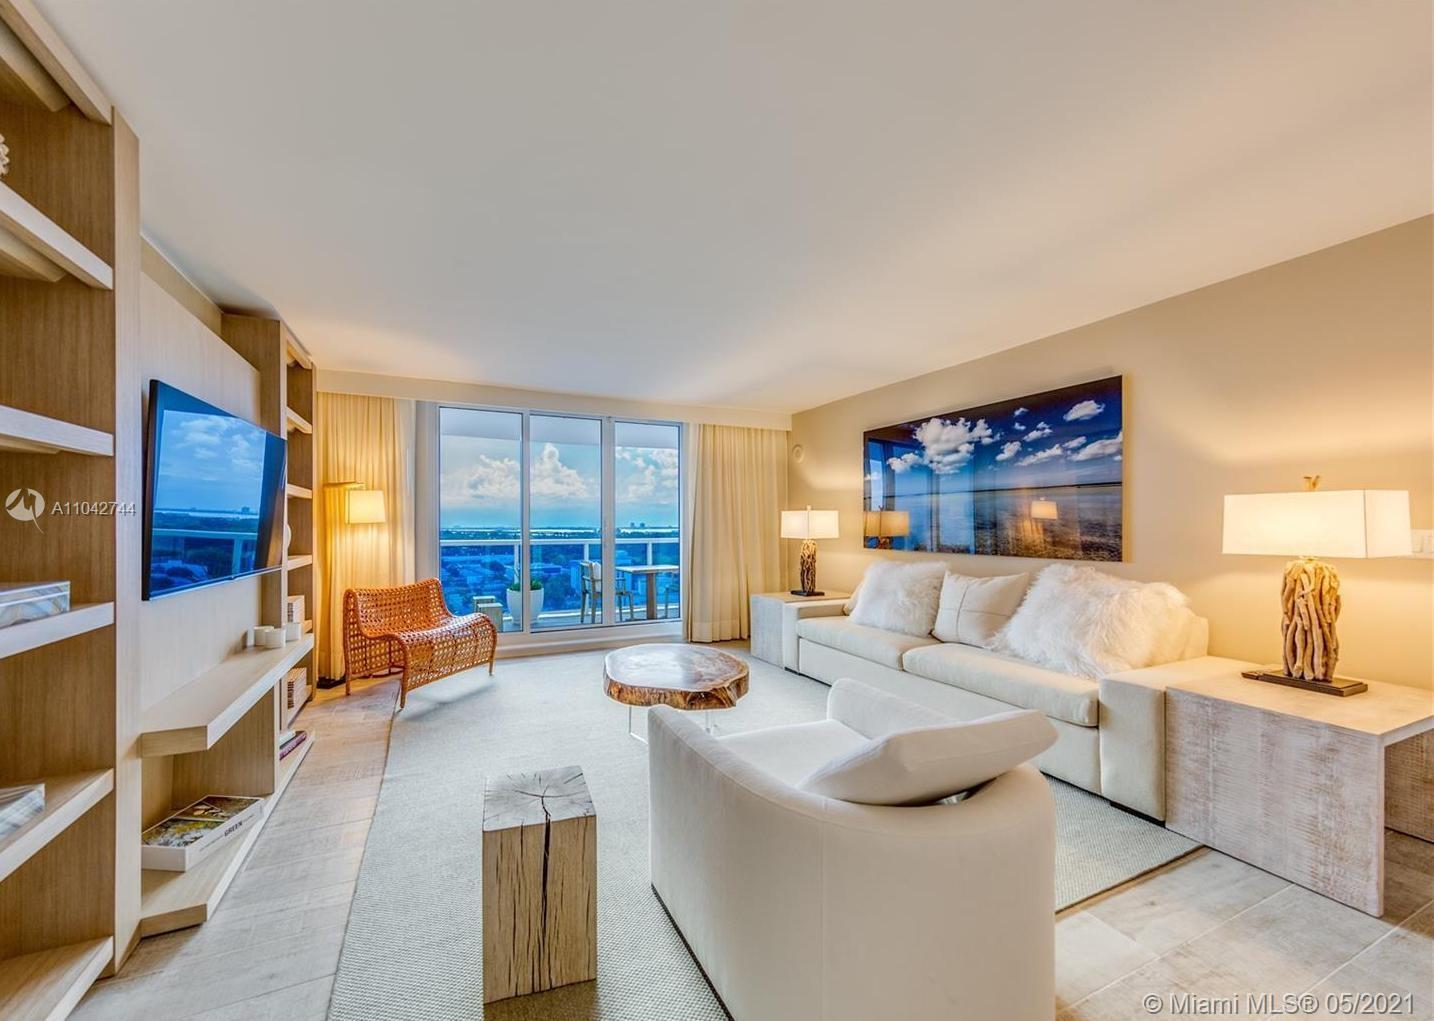 This highly sought after 889 Sq. Ft. condo offers the best of both worlds. Located at the coveted 1